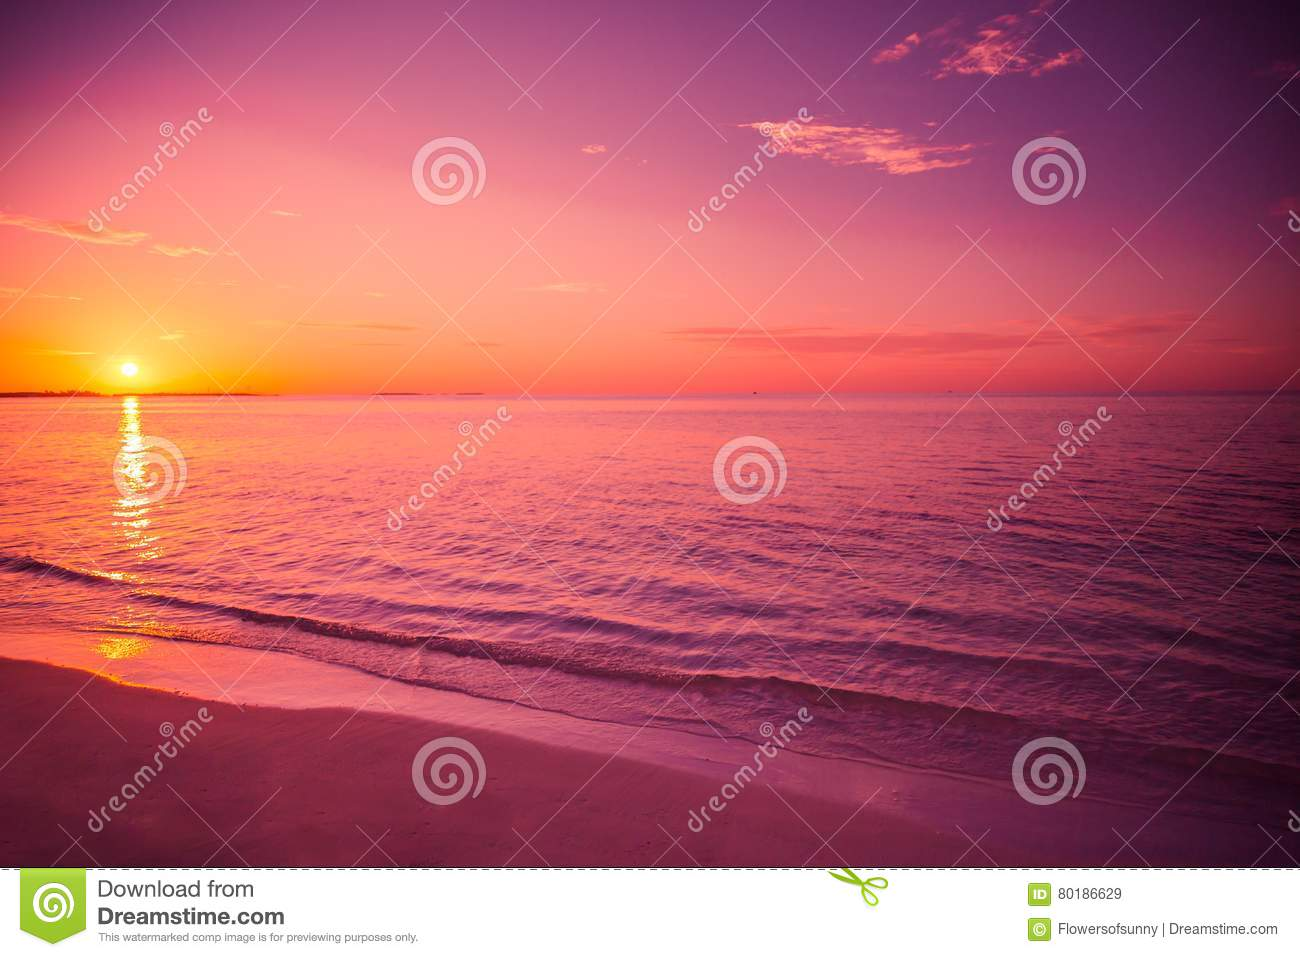 Amazing beach sunset. Relaxing colors with soft waves